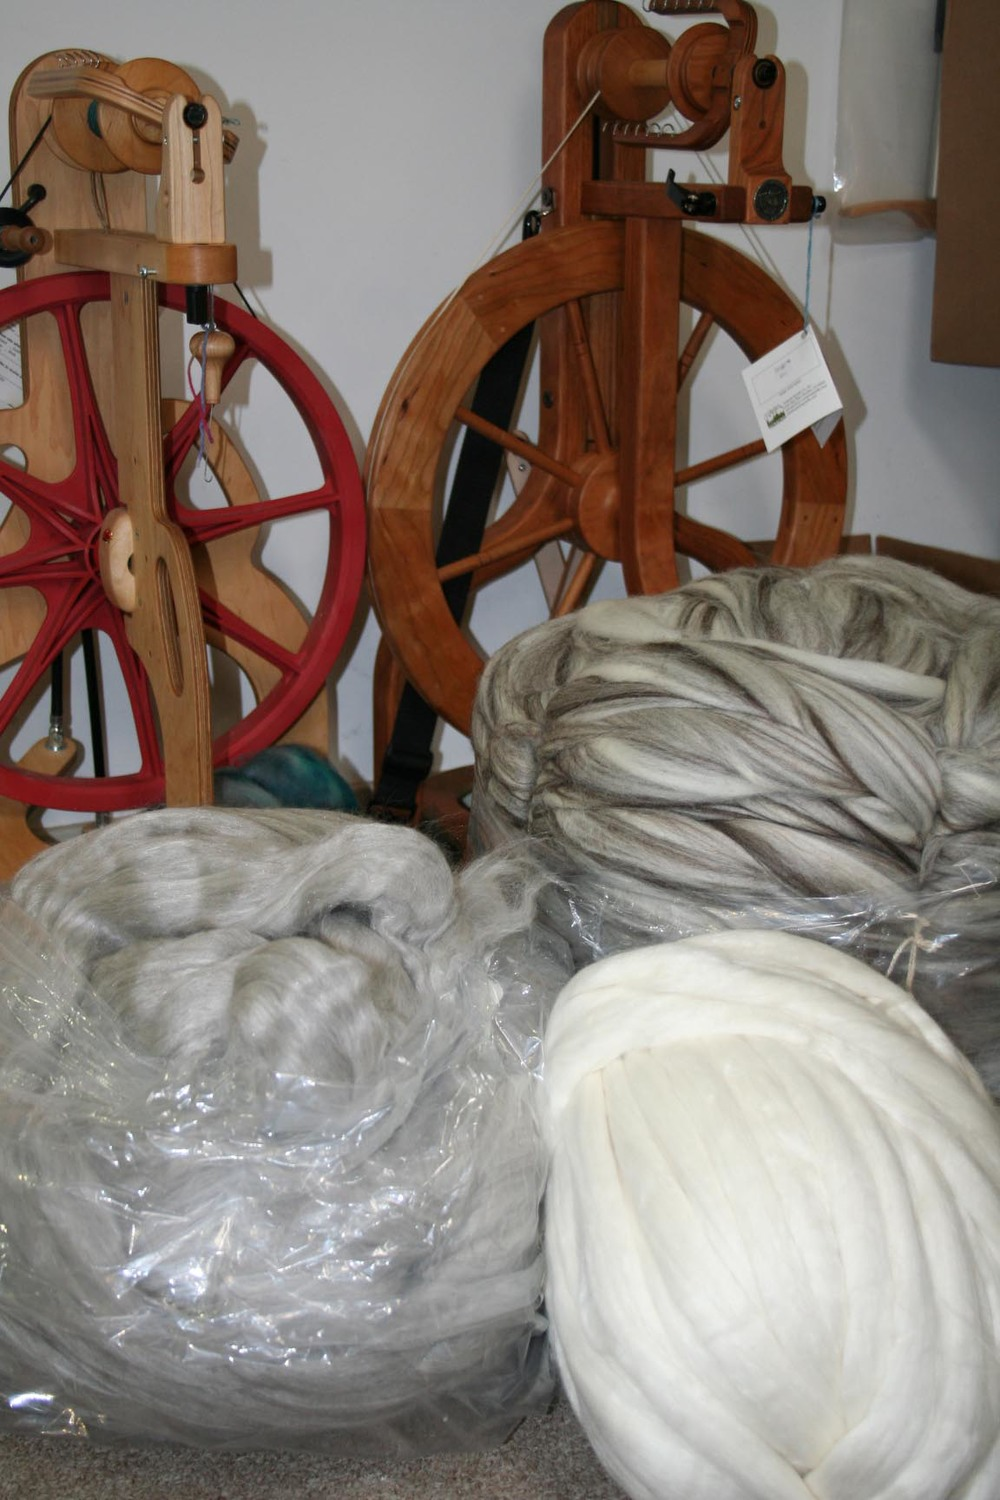 New Yarn Aug 5 003.jpg